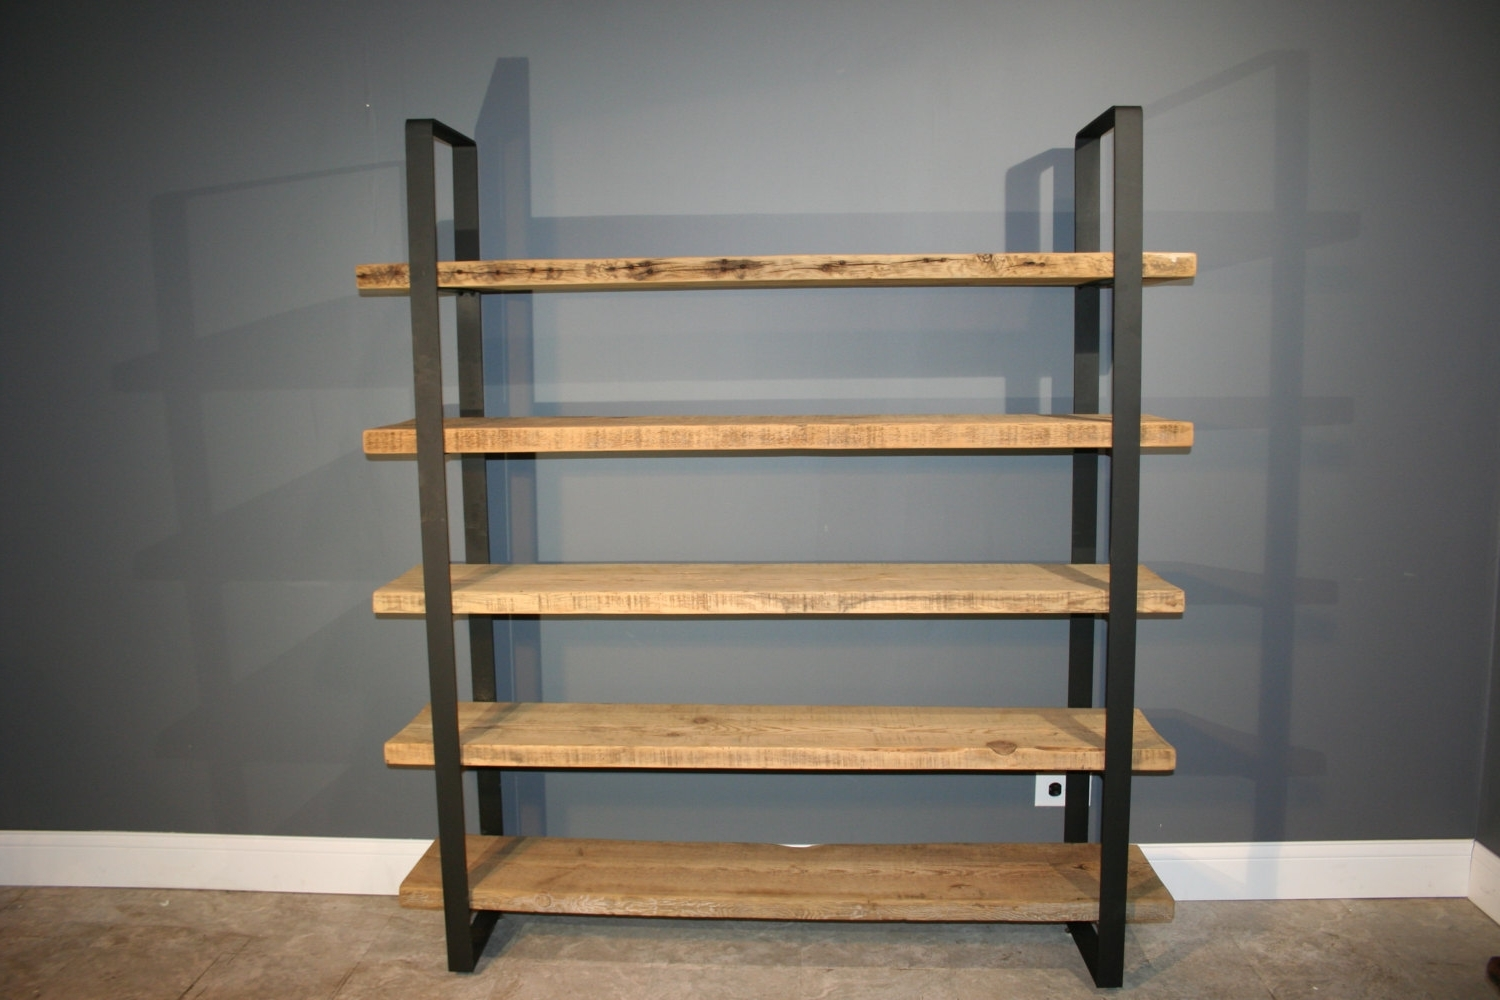 Wooden Shelving Units Intended For Most Up To Date Unique Wood Shelving Units For Decorative And Functional Furniture (View 14 of 15)